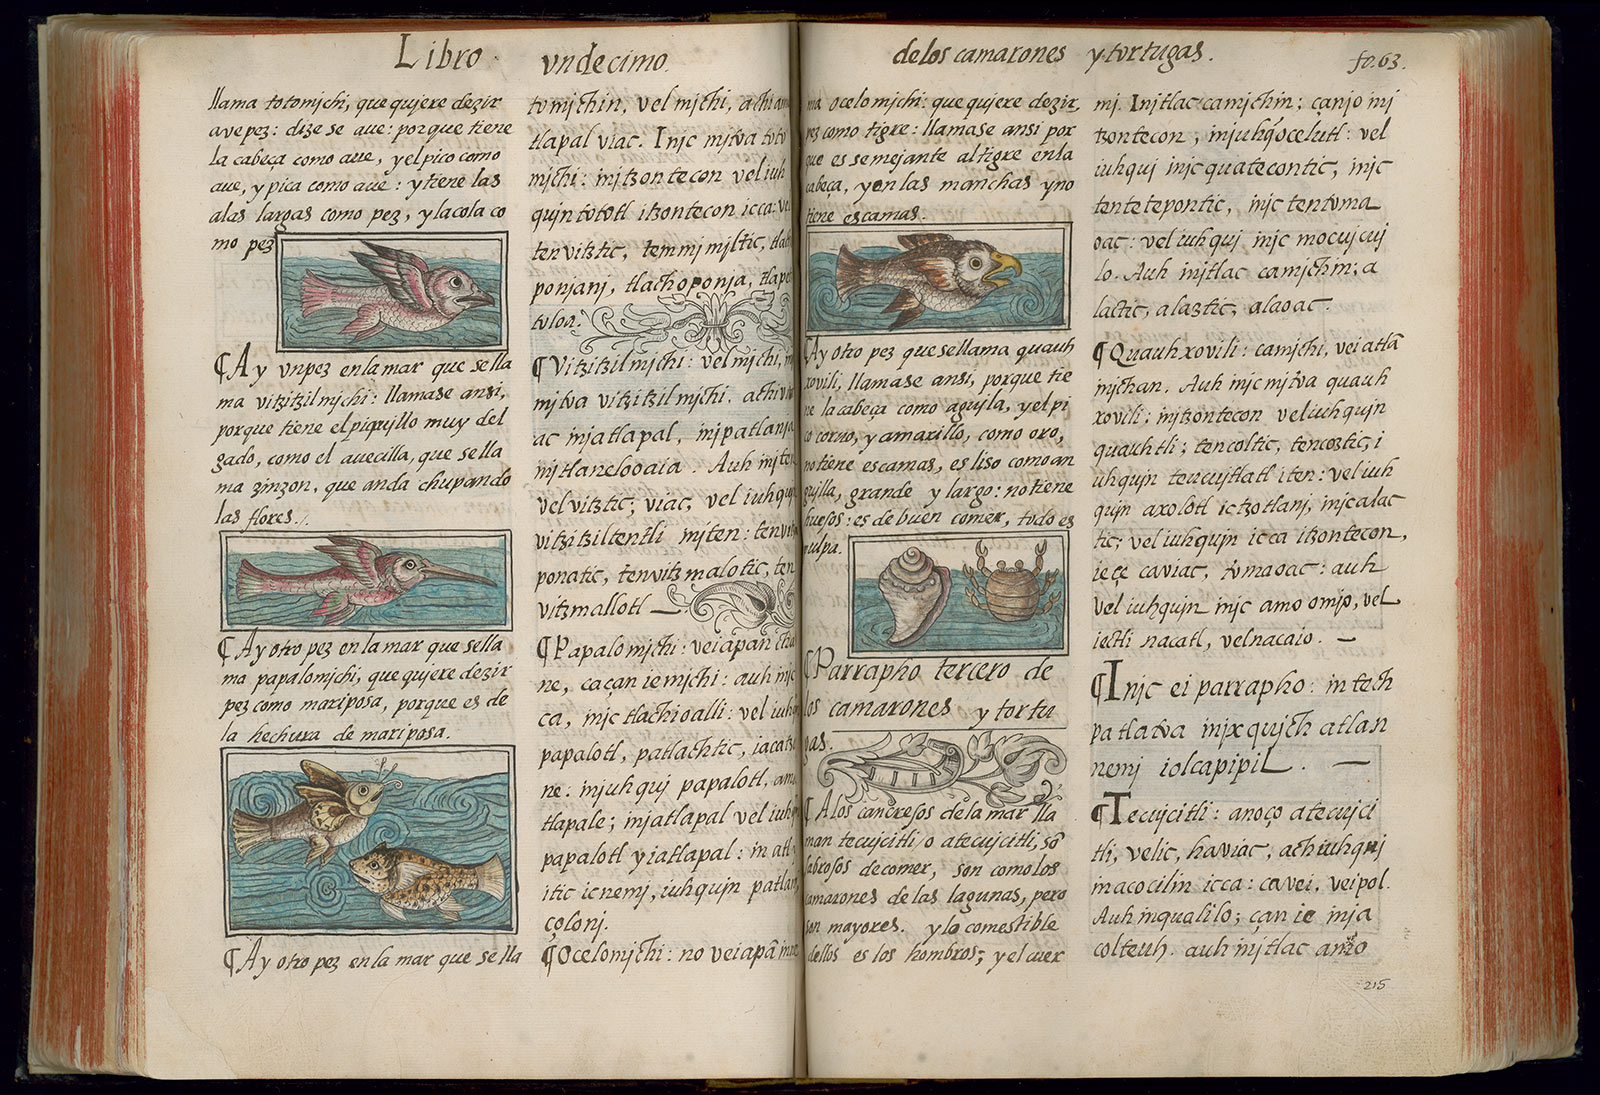 An opened book showing text on both pages with illustrations of fish.